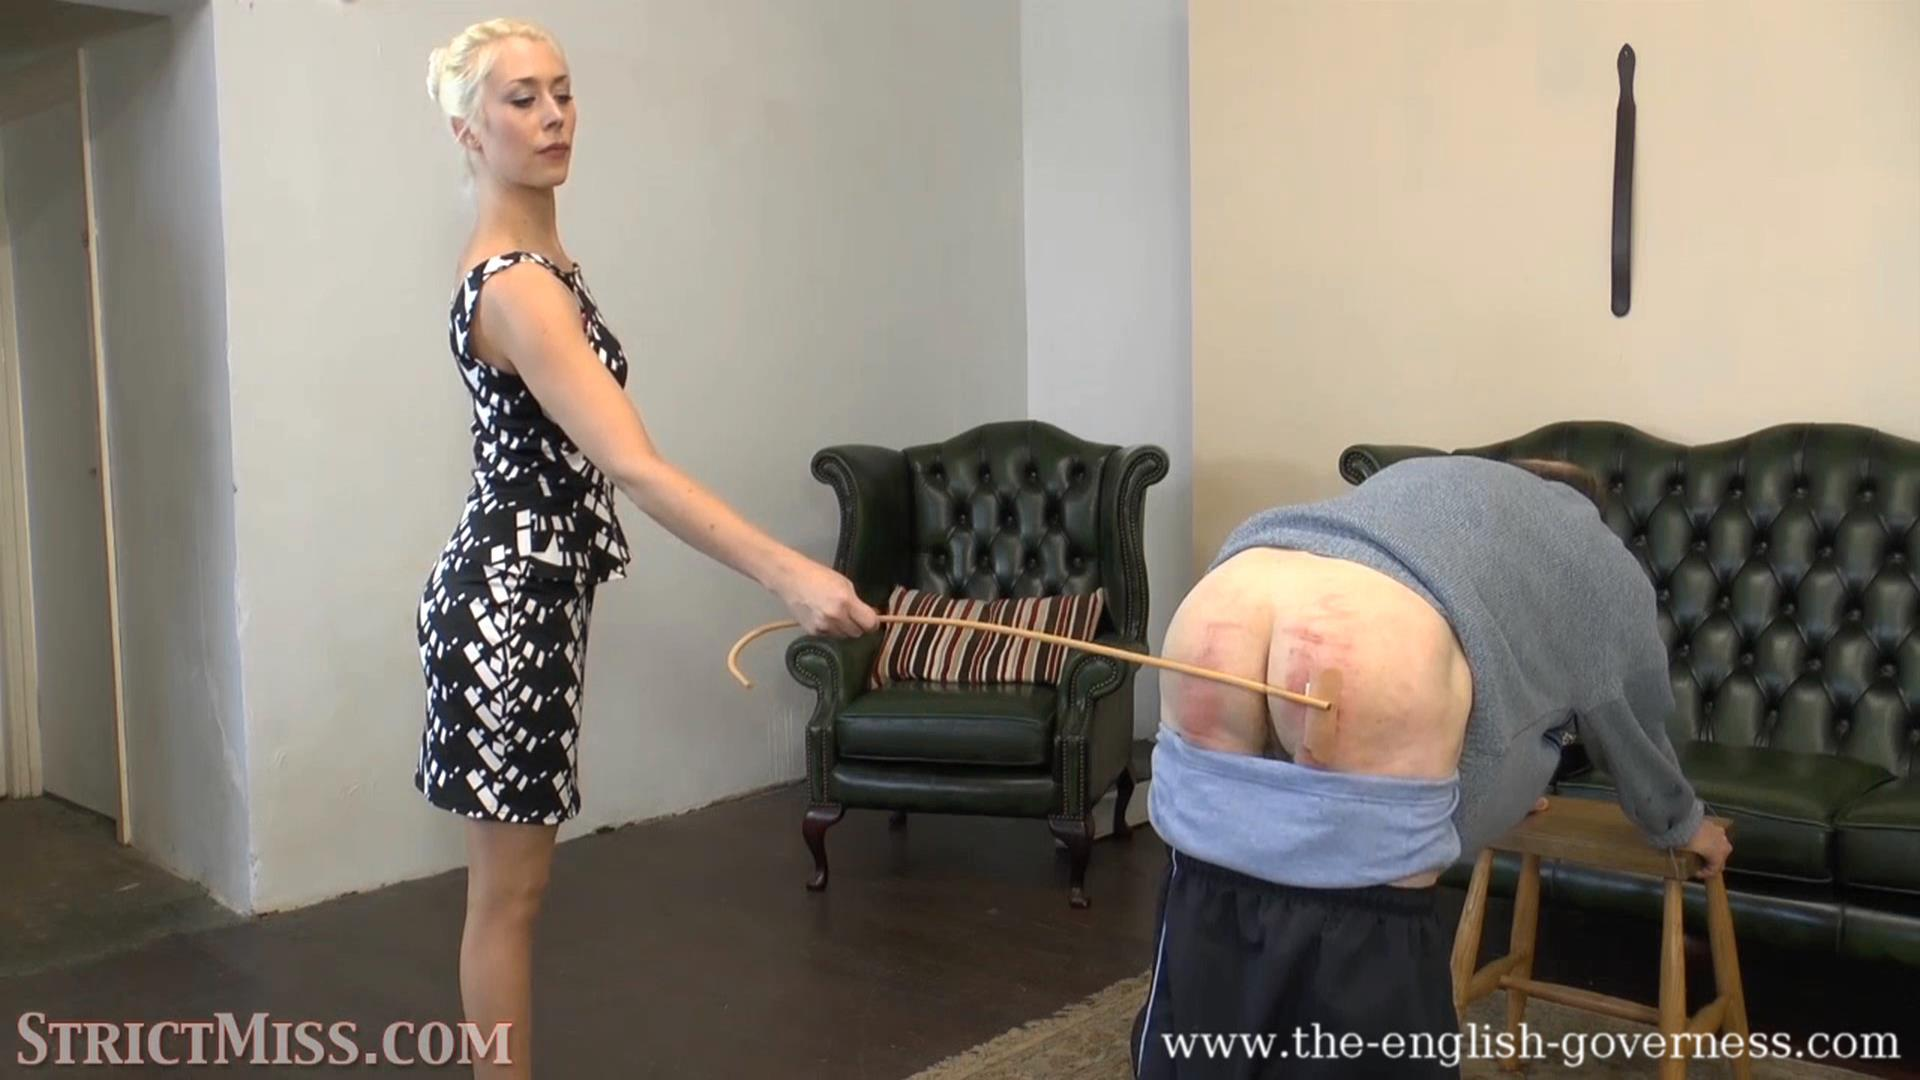 A caning for the naughty boy - THE-ENGLISH-GOVERNESS - FULL HD/1080p/MP4